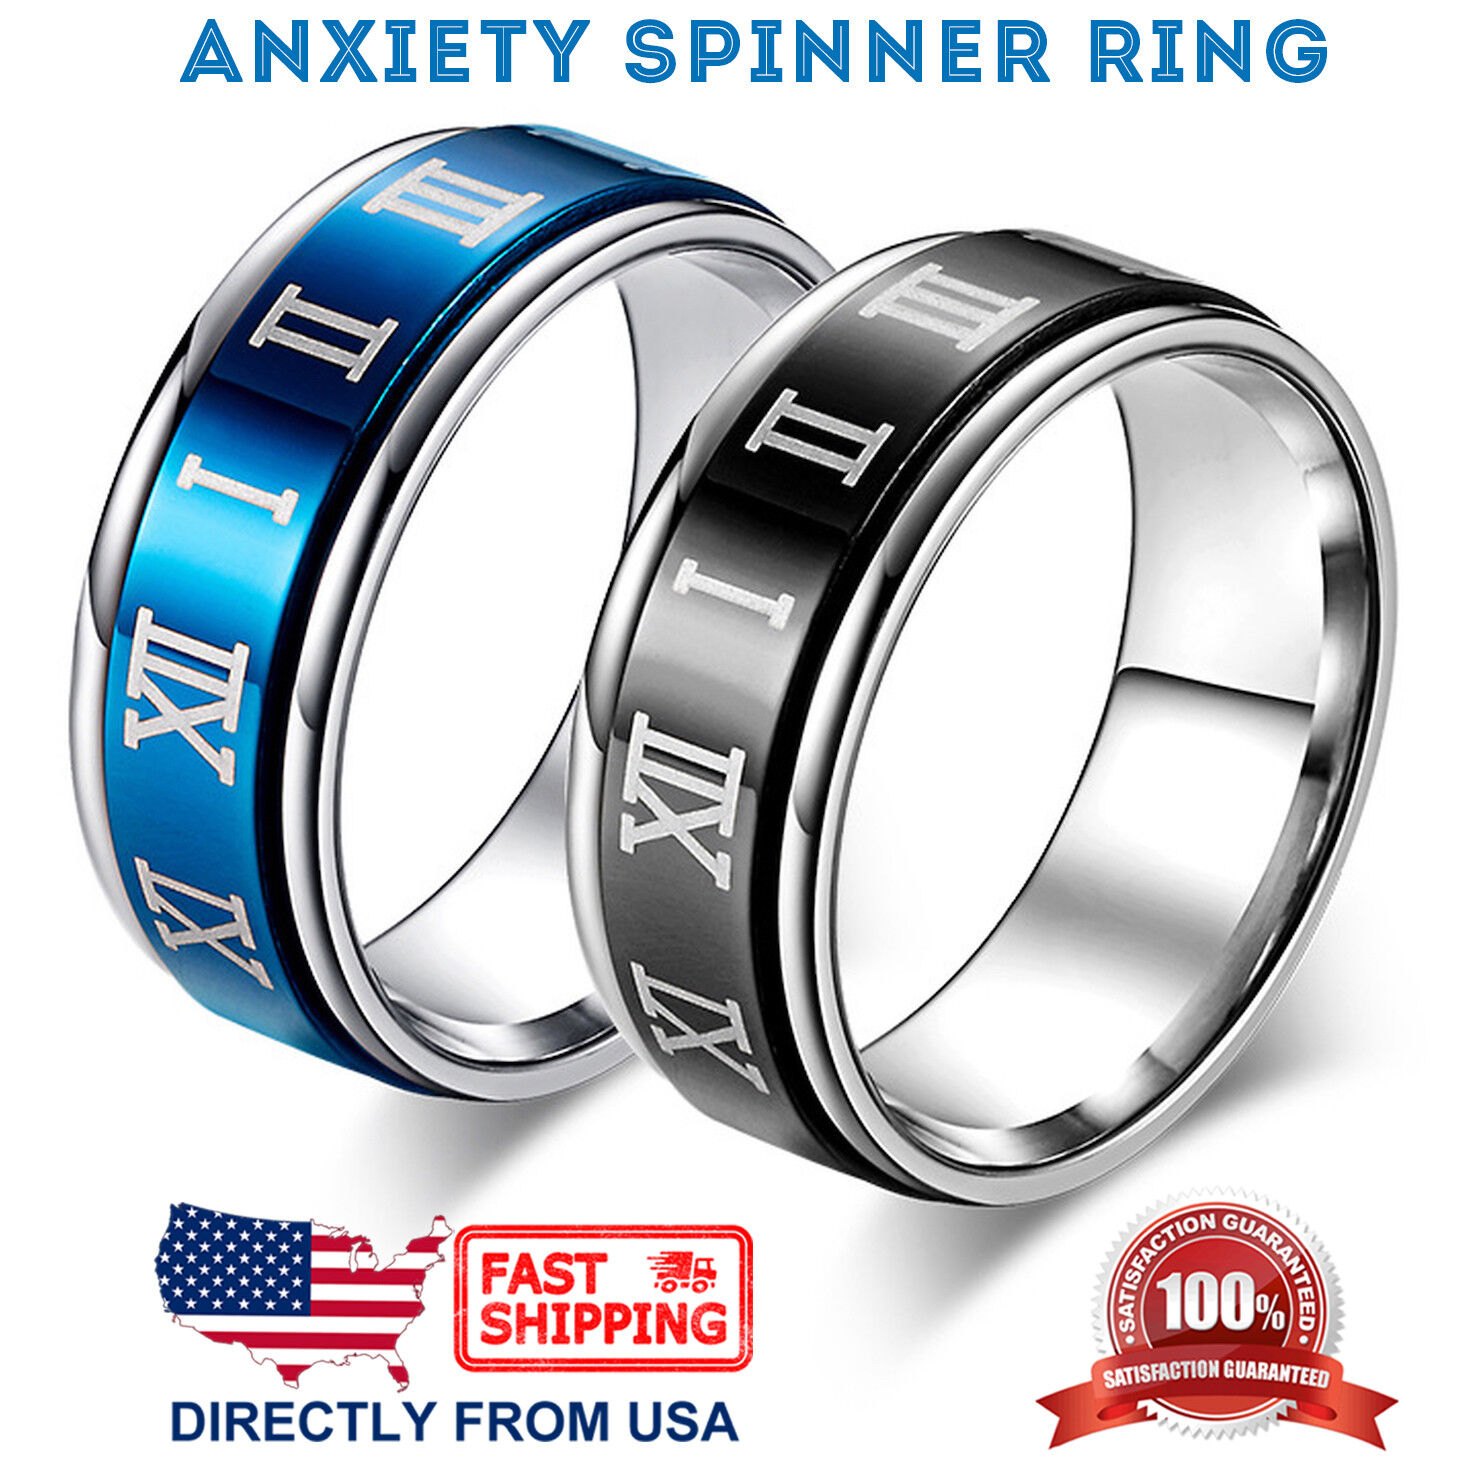 Men's Stainless Steel Wedding Band 8mm Roman Numerals Anxiety Spinner Ring Jewelry & Watches